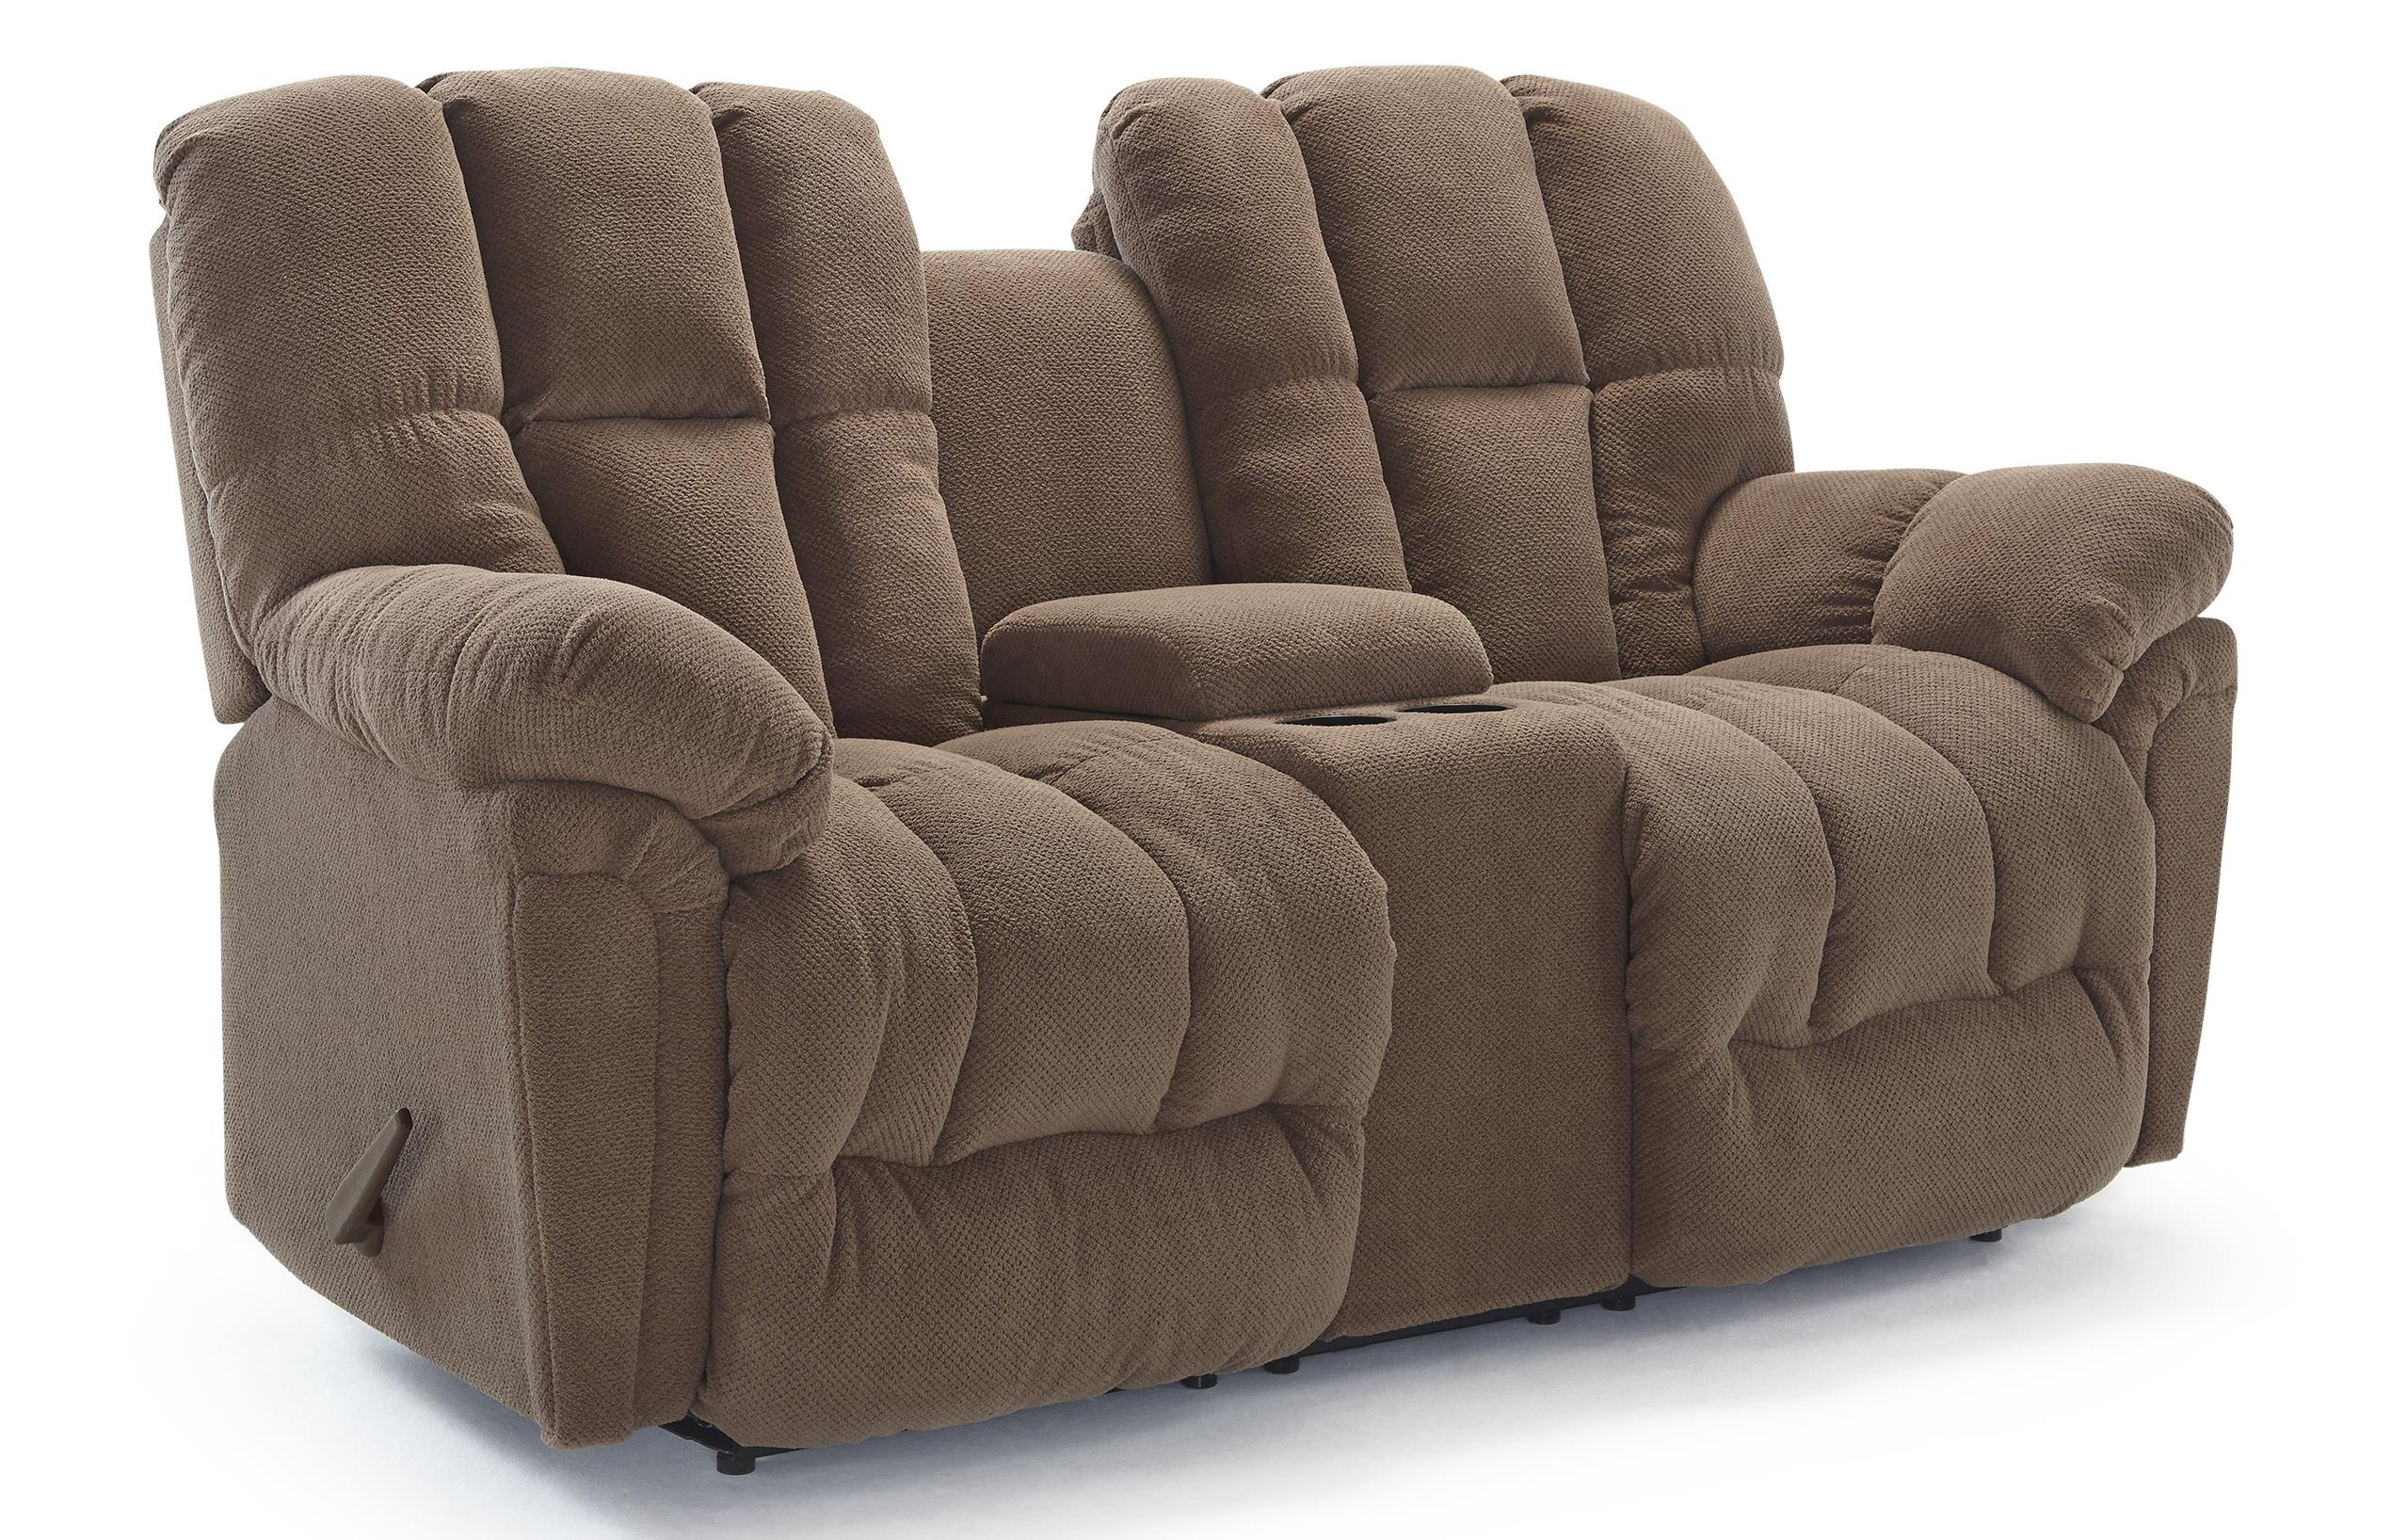 Lucas plush power rocking reclining loveseat with drink for Plush couch and loveseat